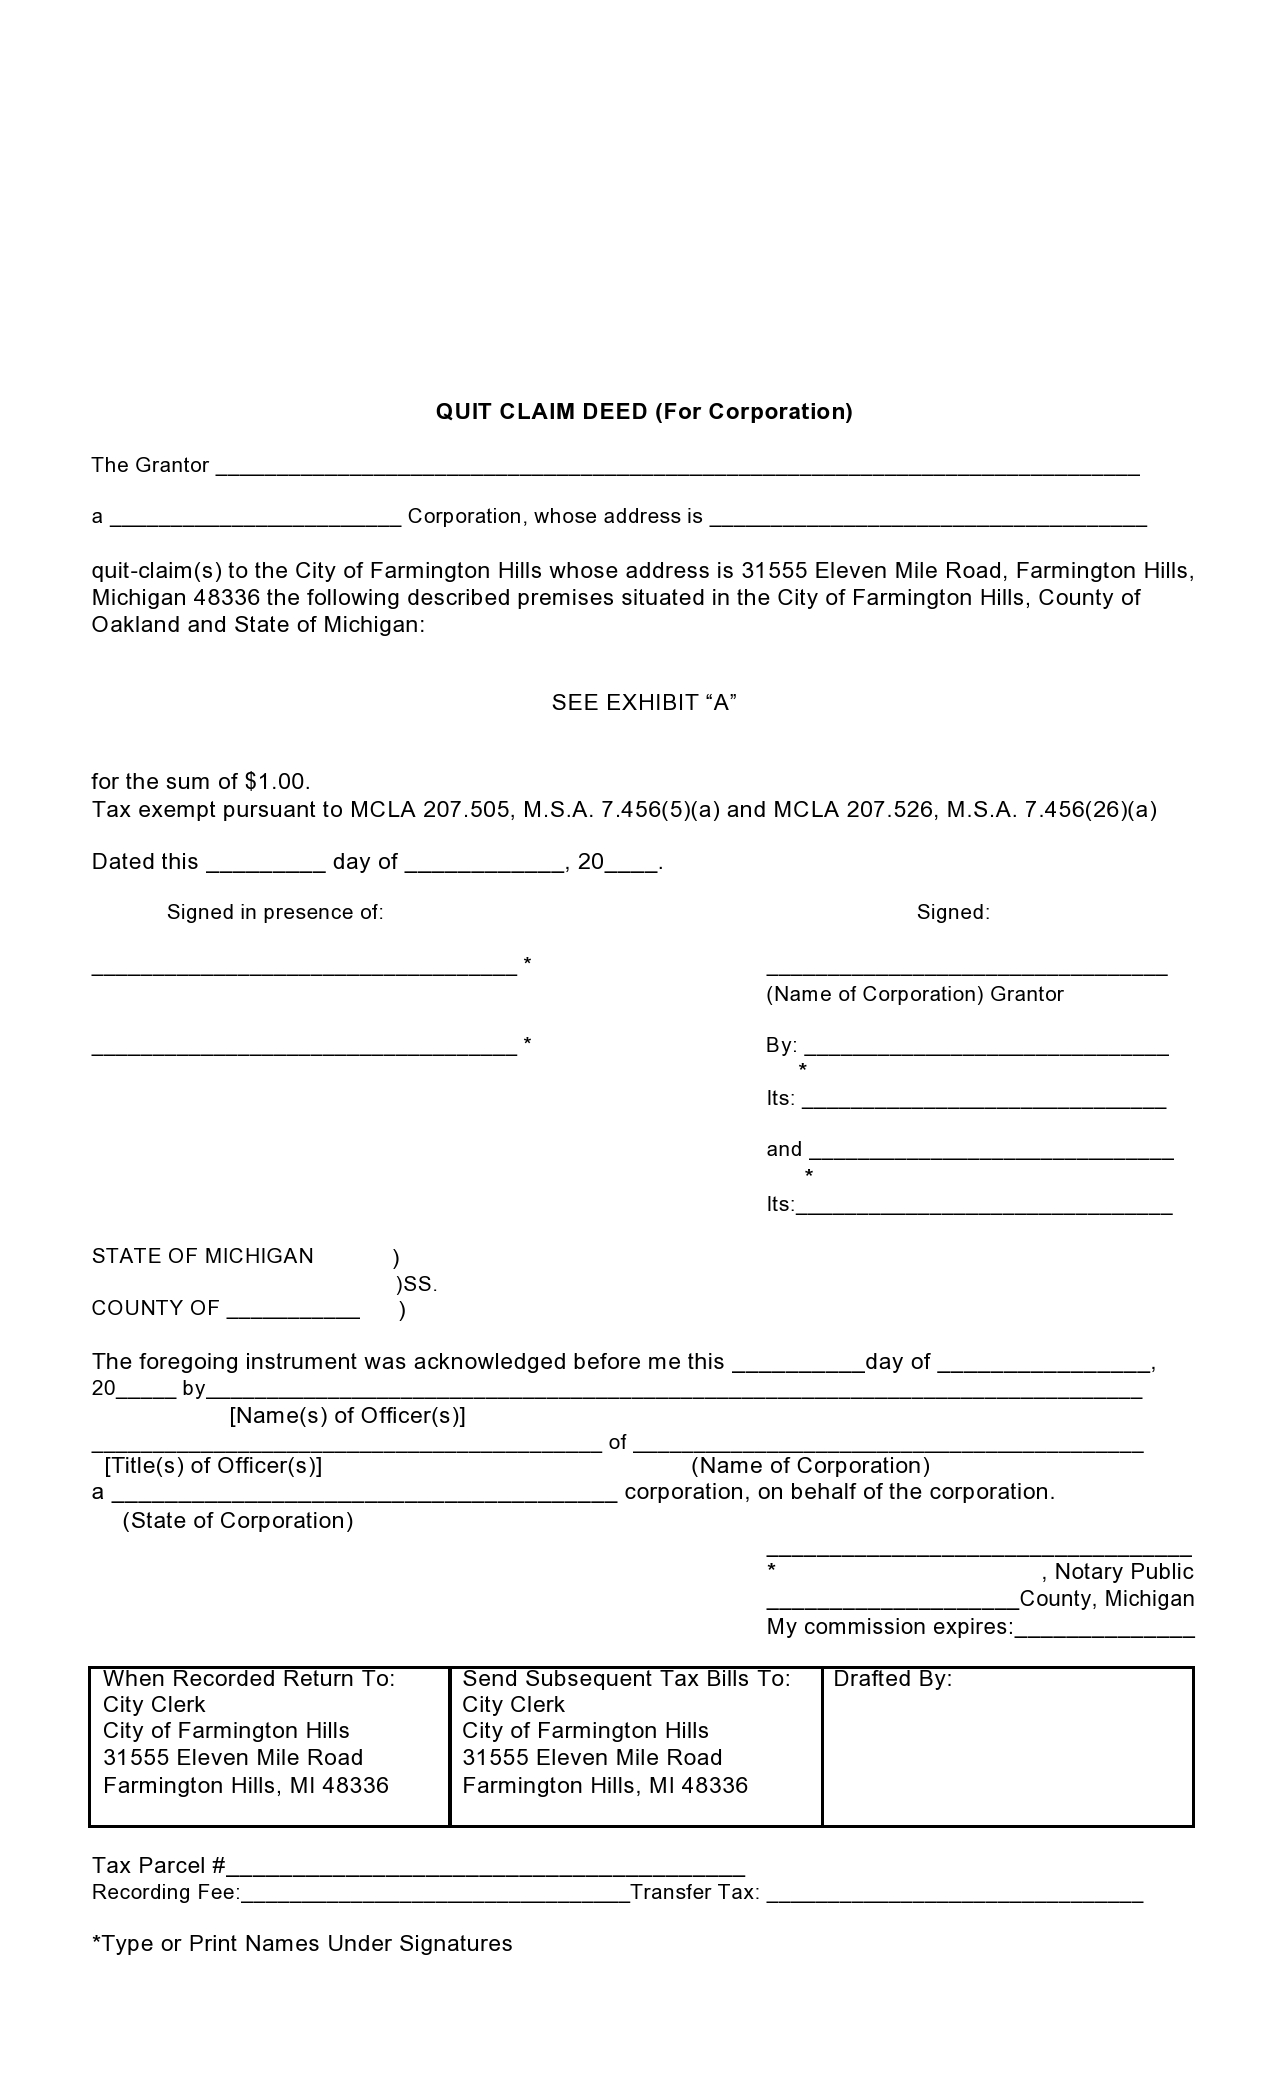 Free quit claim deed form 05